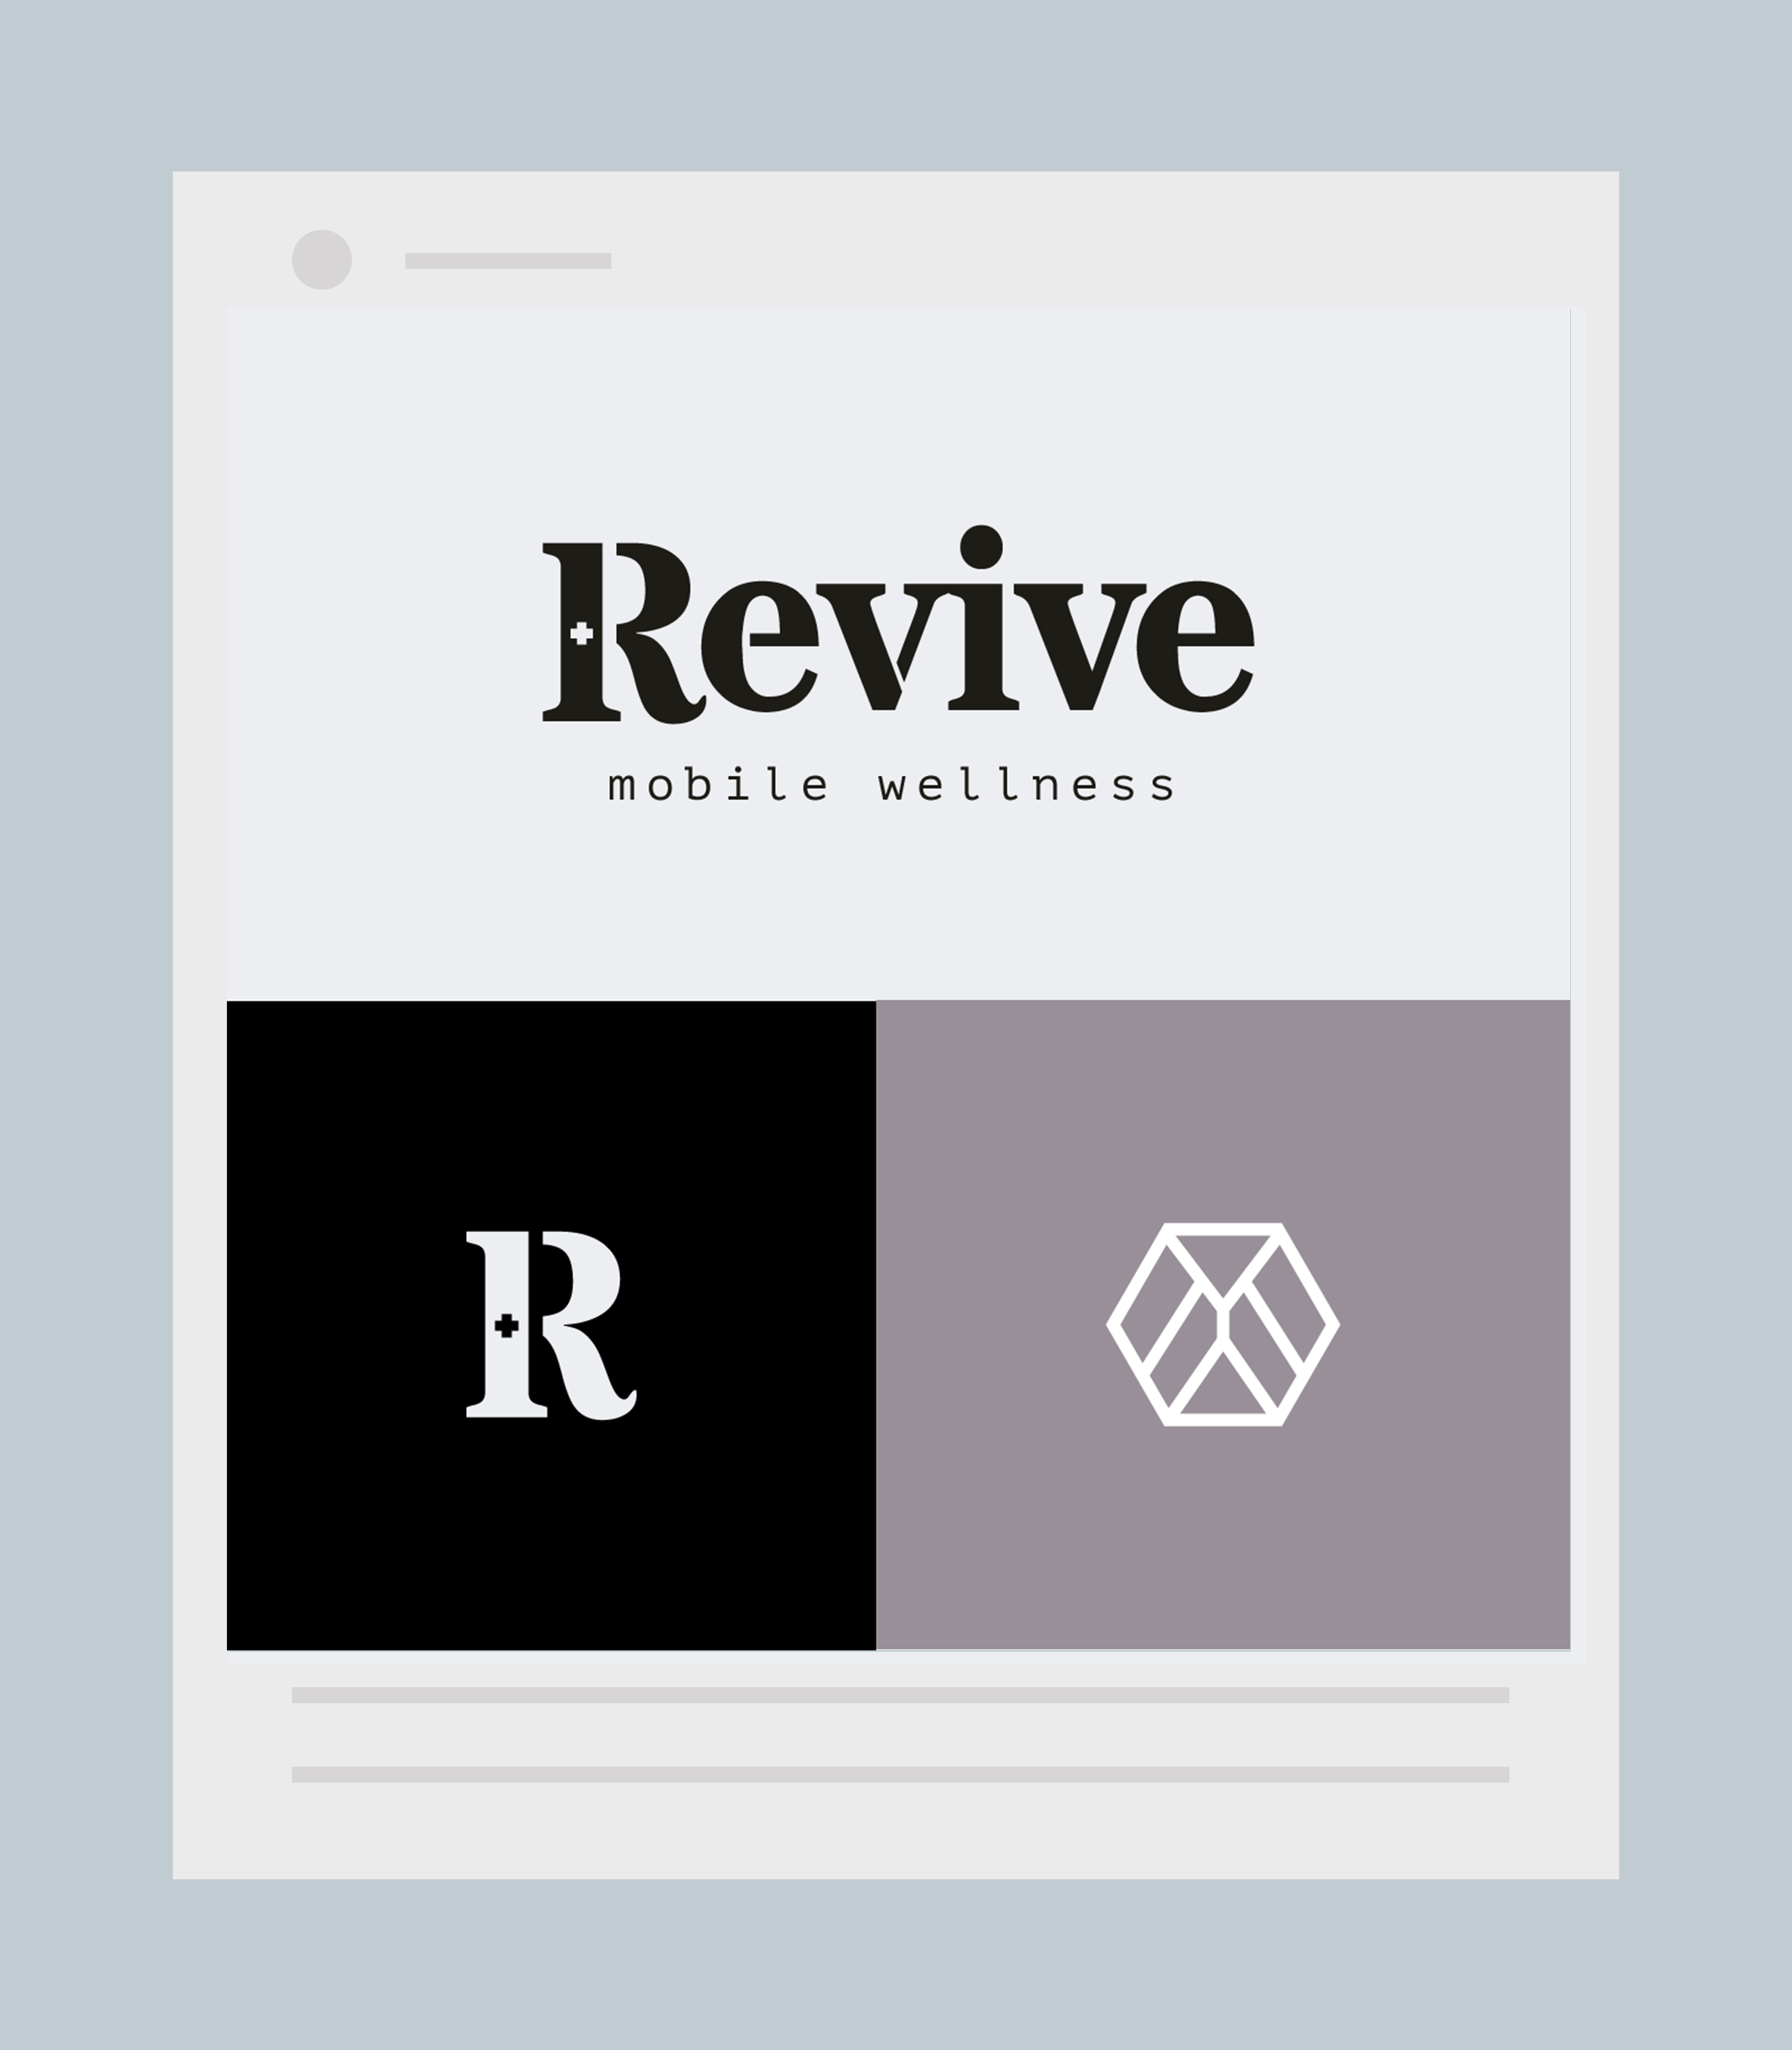 revive.png